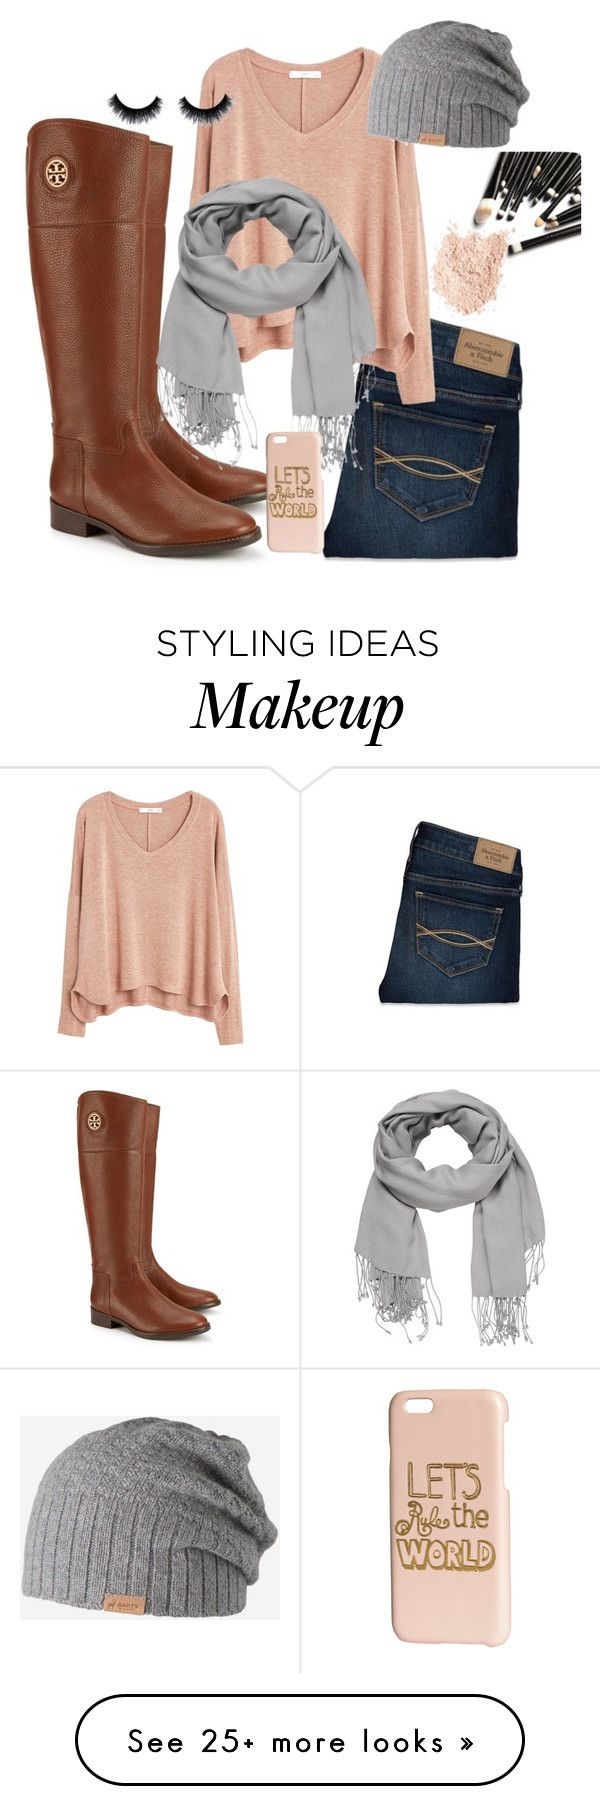 """""""Untitled #37"""" by emilyscott314 on Polyvore featuring Tory Burch, Abercrombie & Fitch, MANGO, maurices, Barts and H&M"""